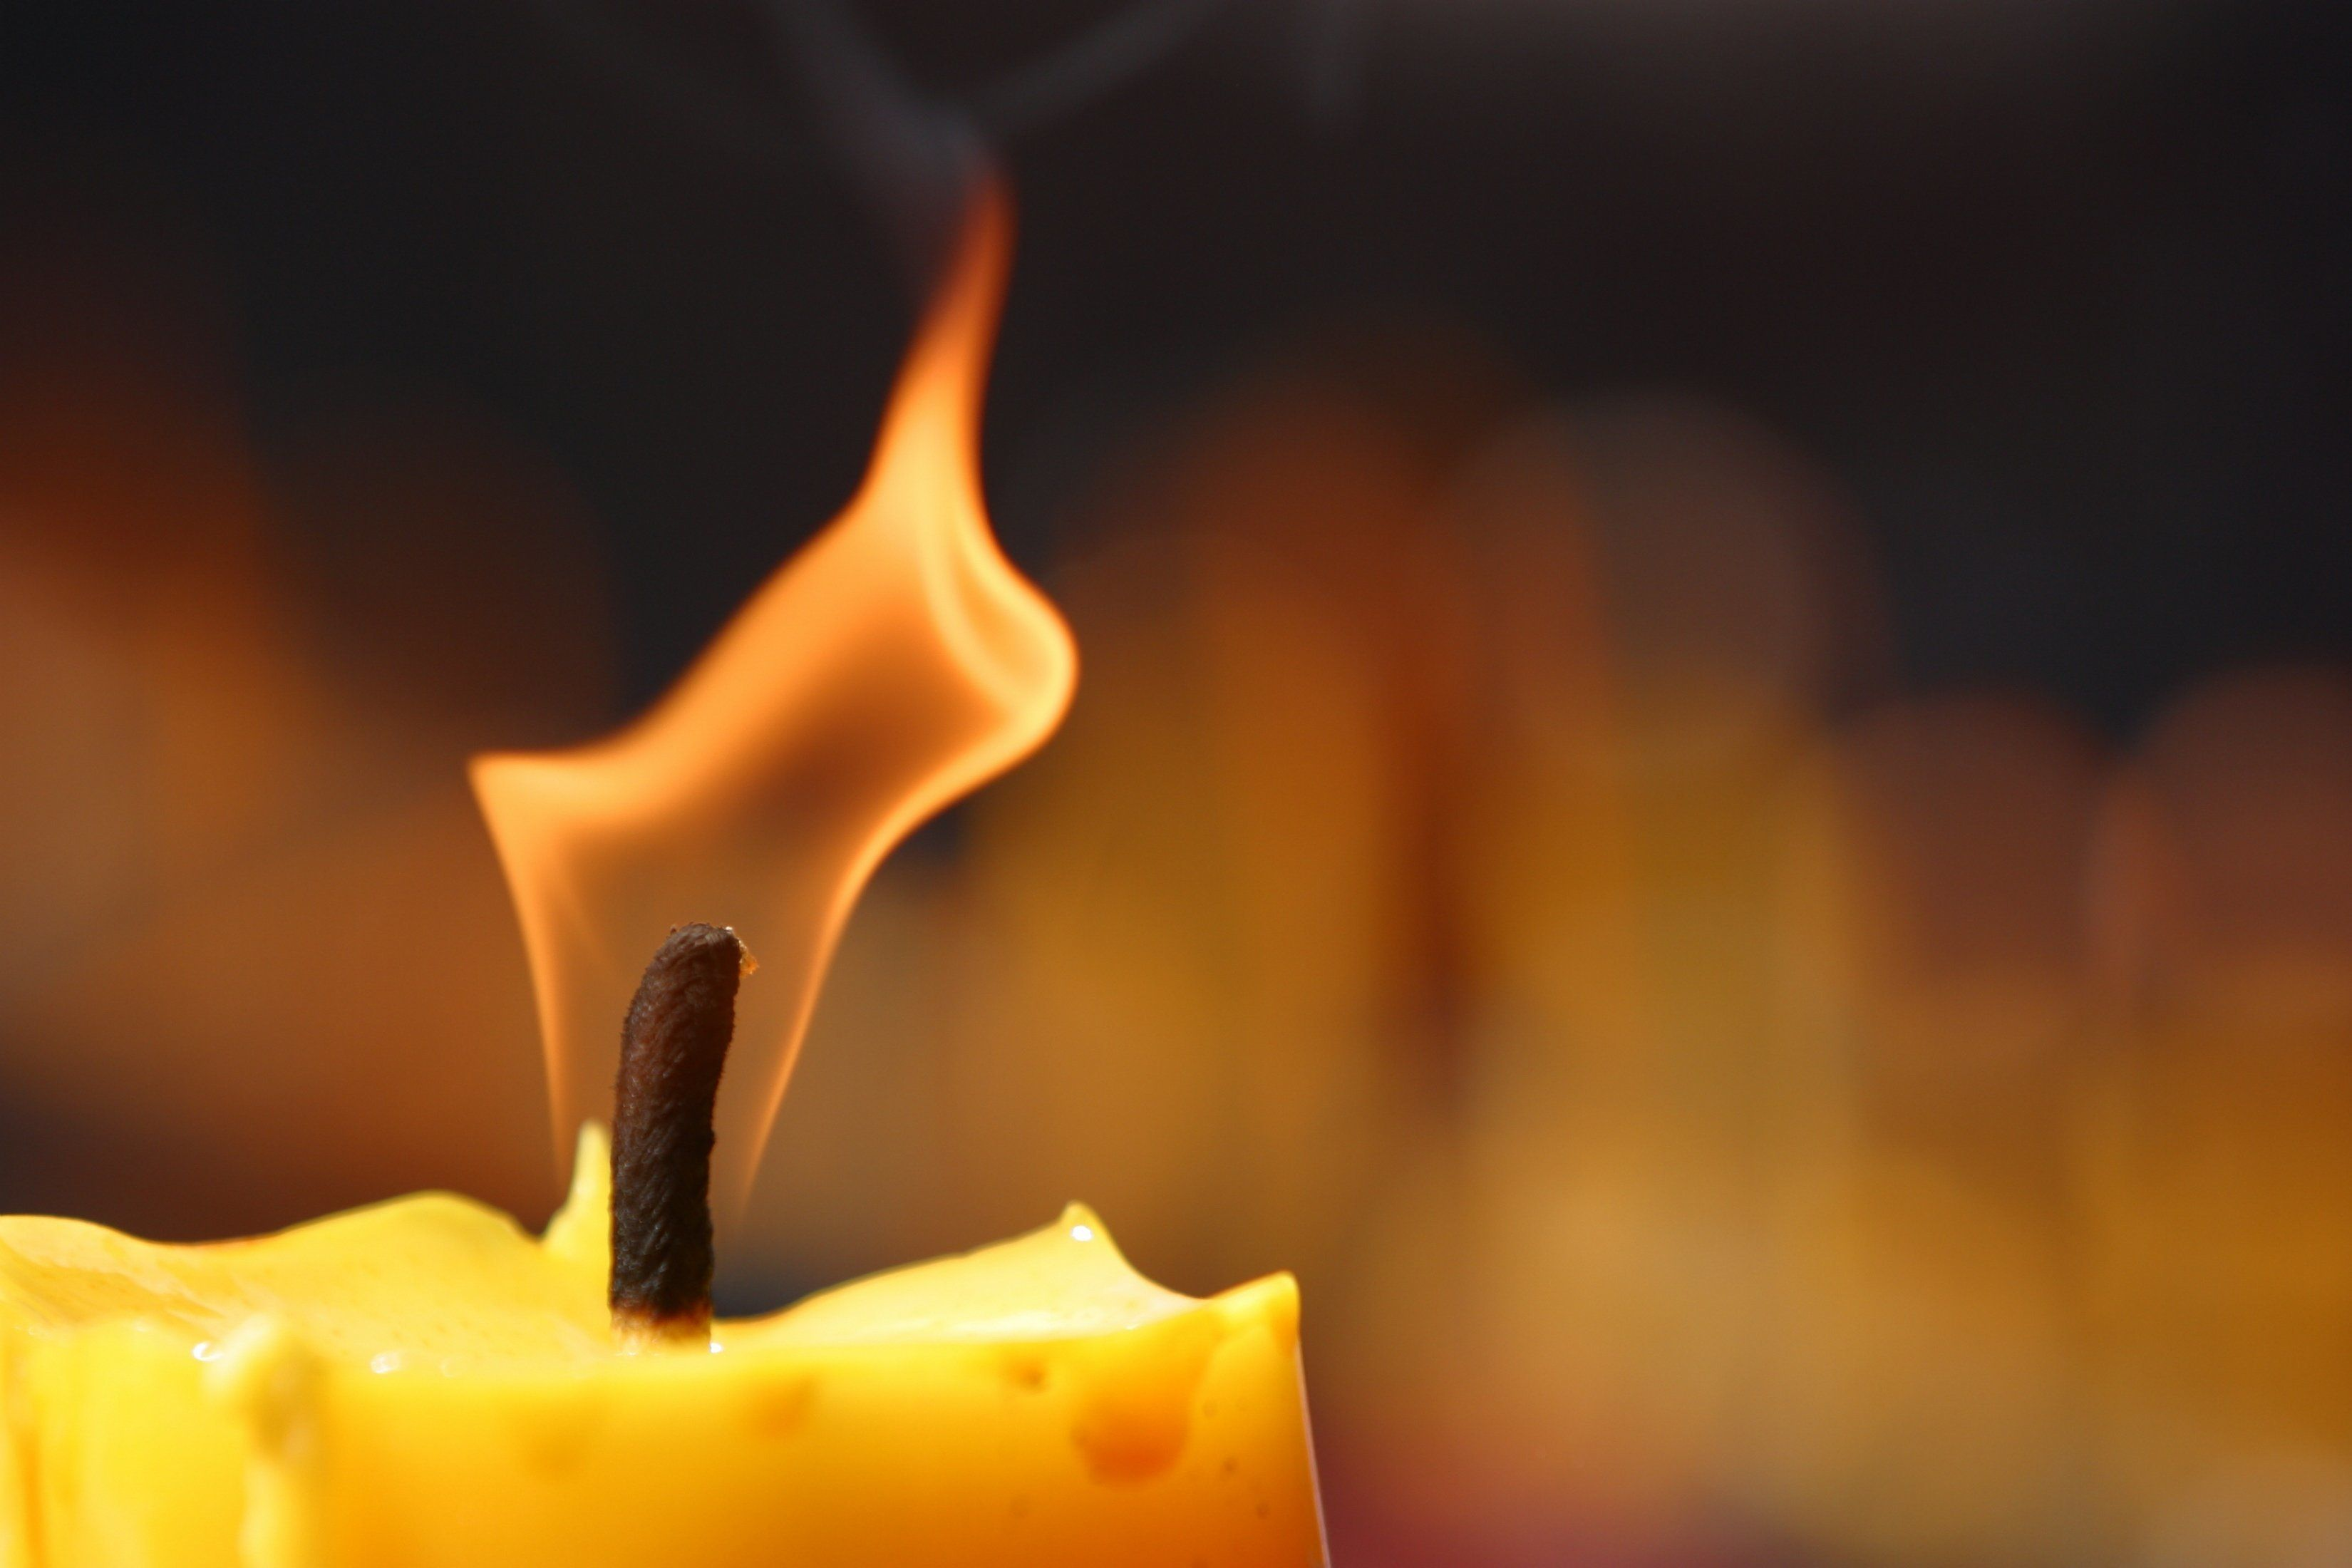 Burning symbolic candle